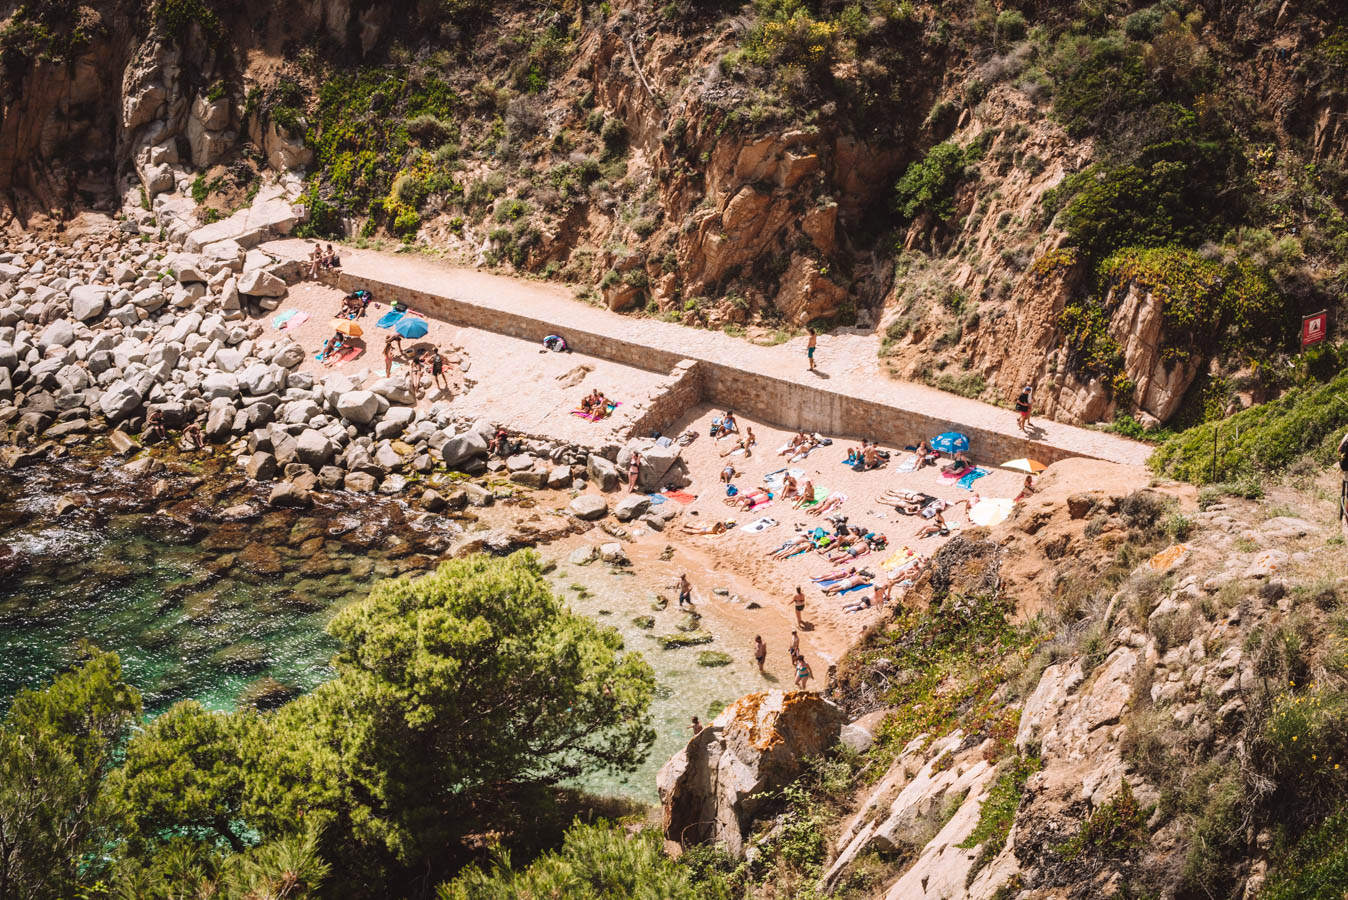 beaches at Tossa de Mar. Travel For Bliss